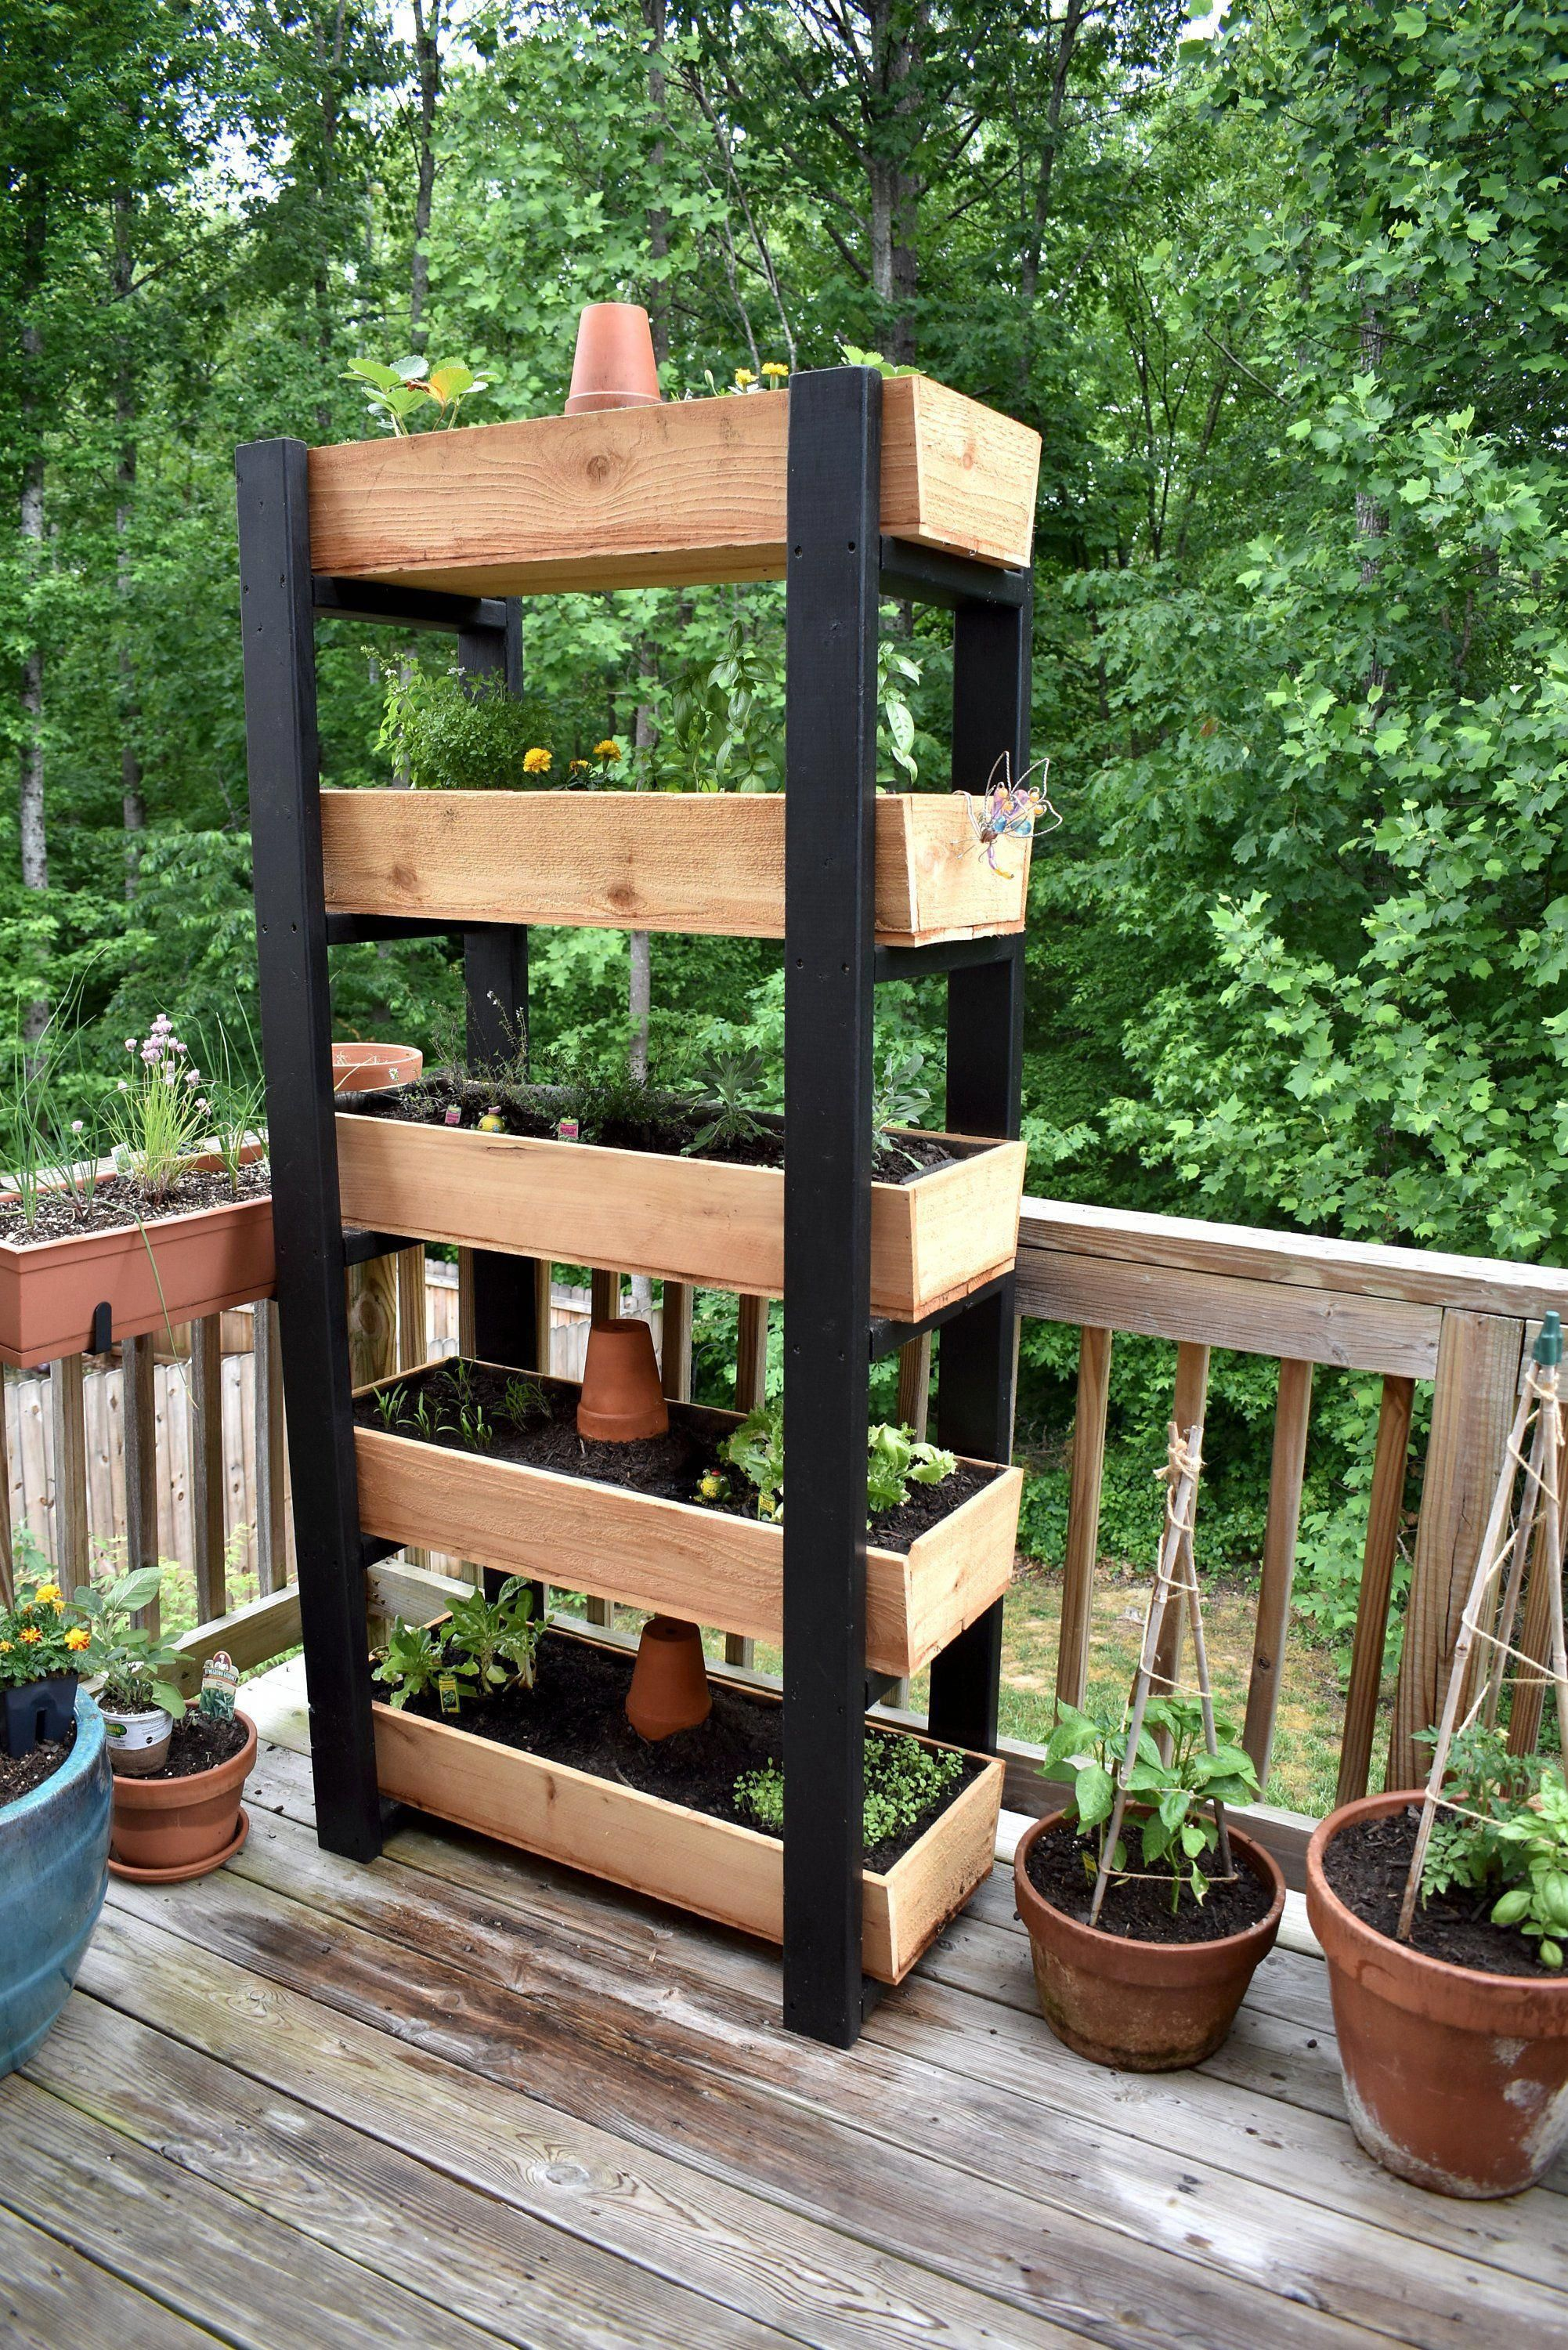 Pin By Cecilia Winstead On Gardening Vertical Garden Diy Vertical Garden Design Vertical Garden Planters